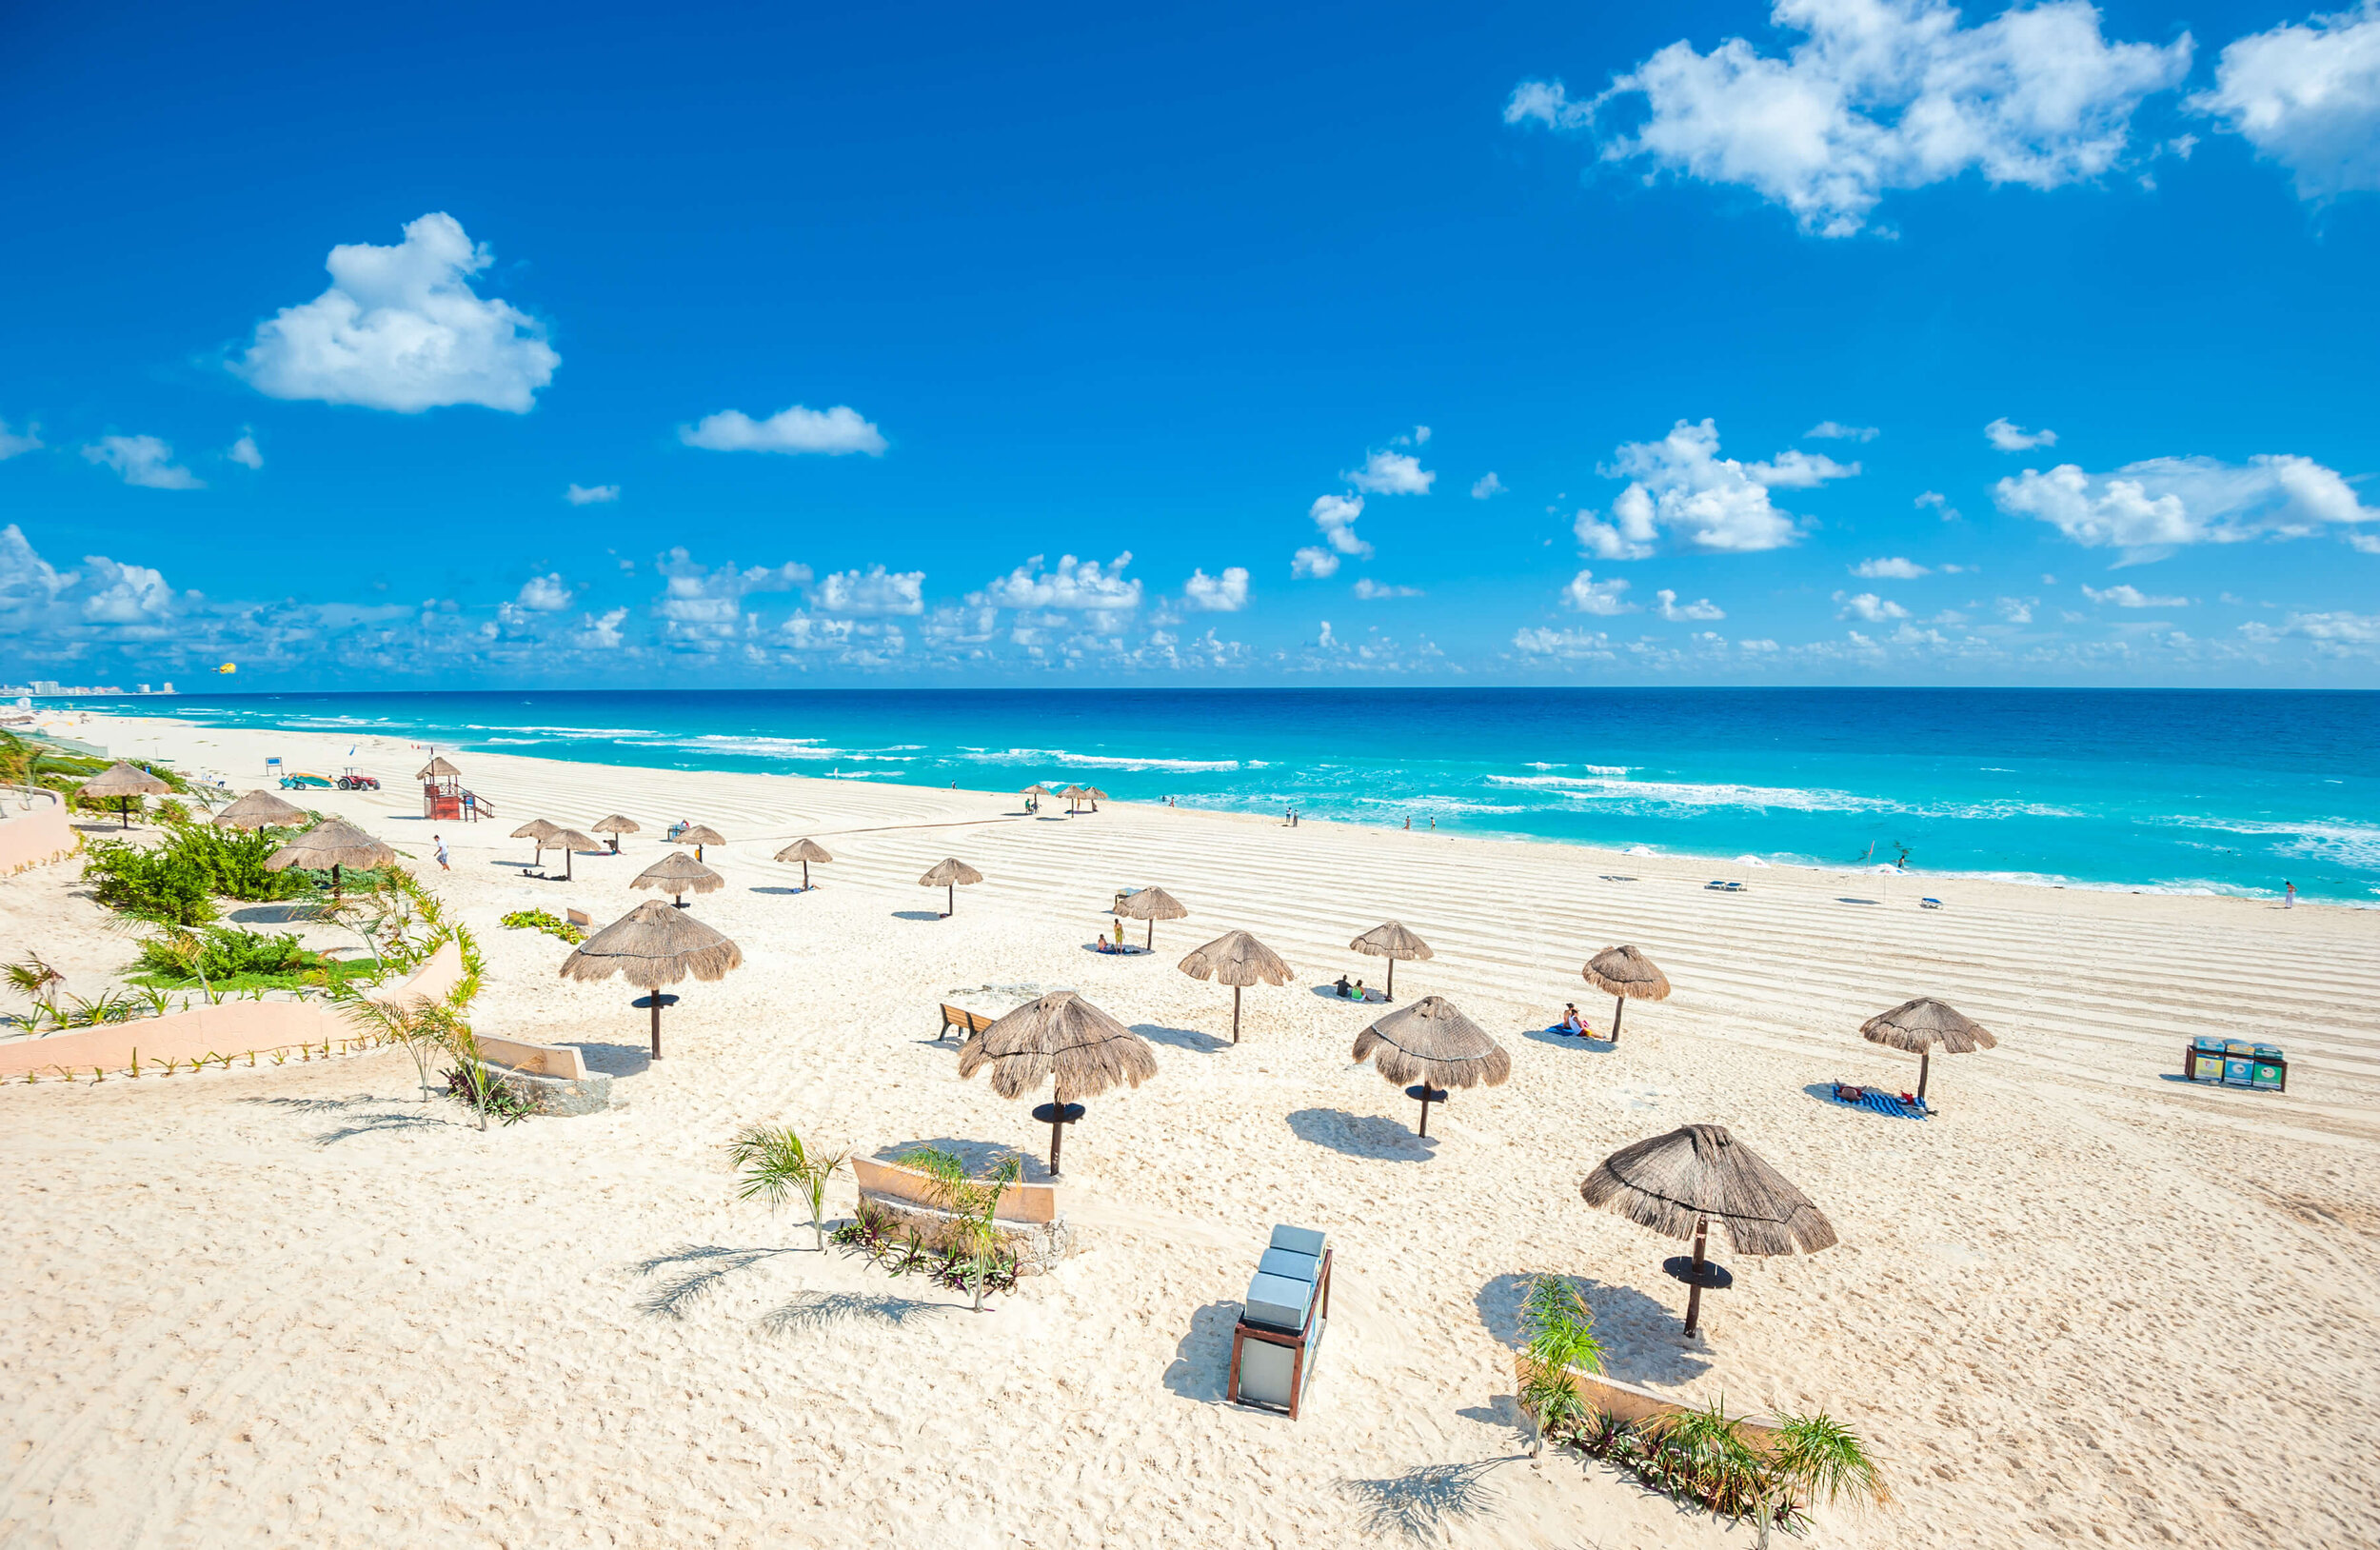 Image for: How to Win a Trip to Cancun Playing a Free Online Poker Tournament!